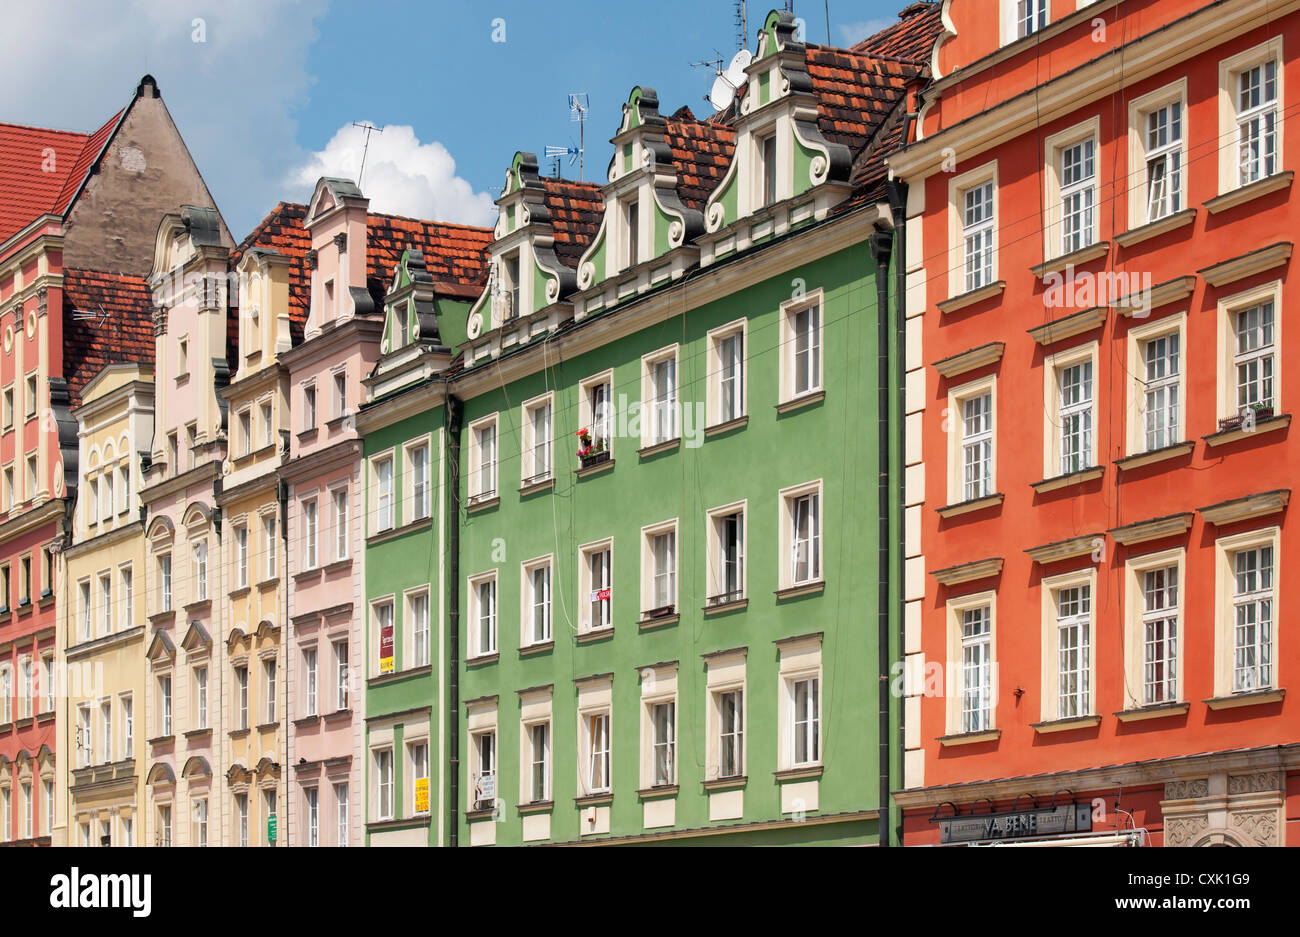 Colourful Facades of Townhouses on Rynek (Market Square) in Wroclaw, Lower Silesia, Poland  Stock Photo